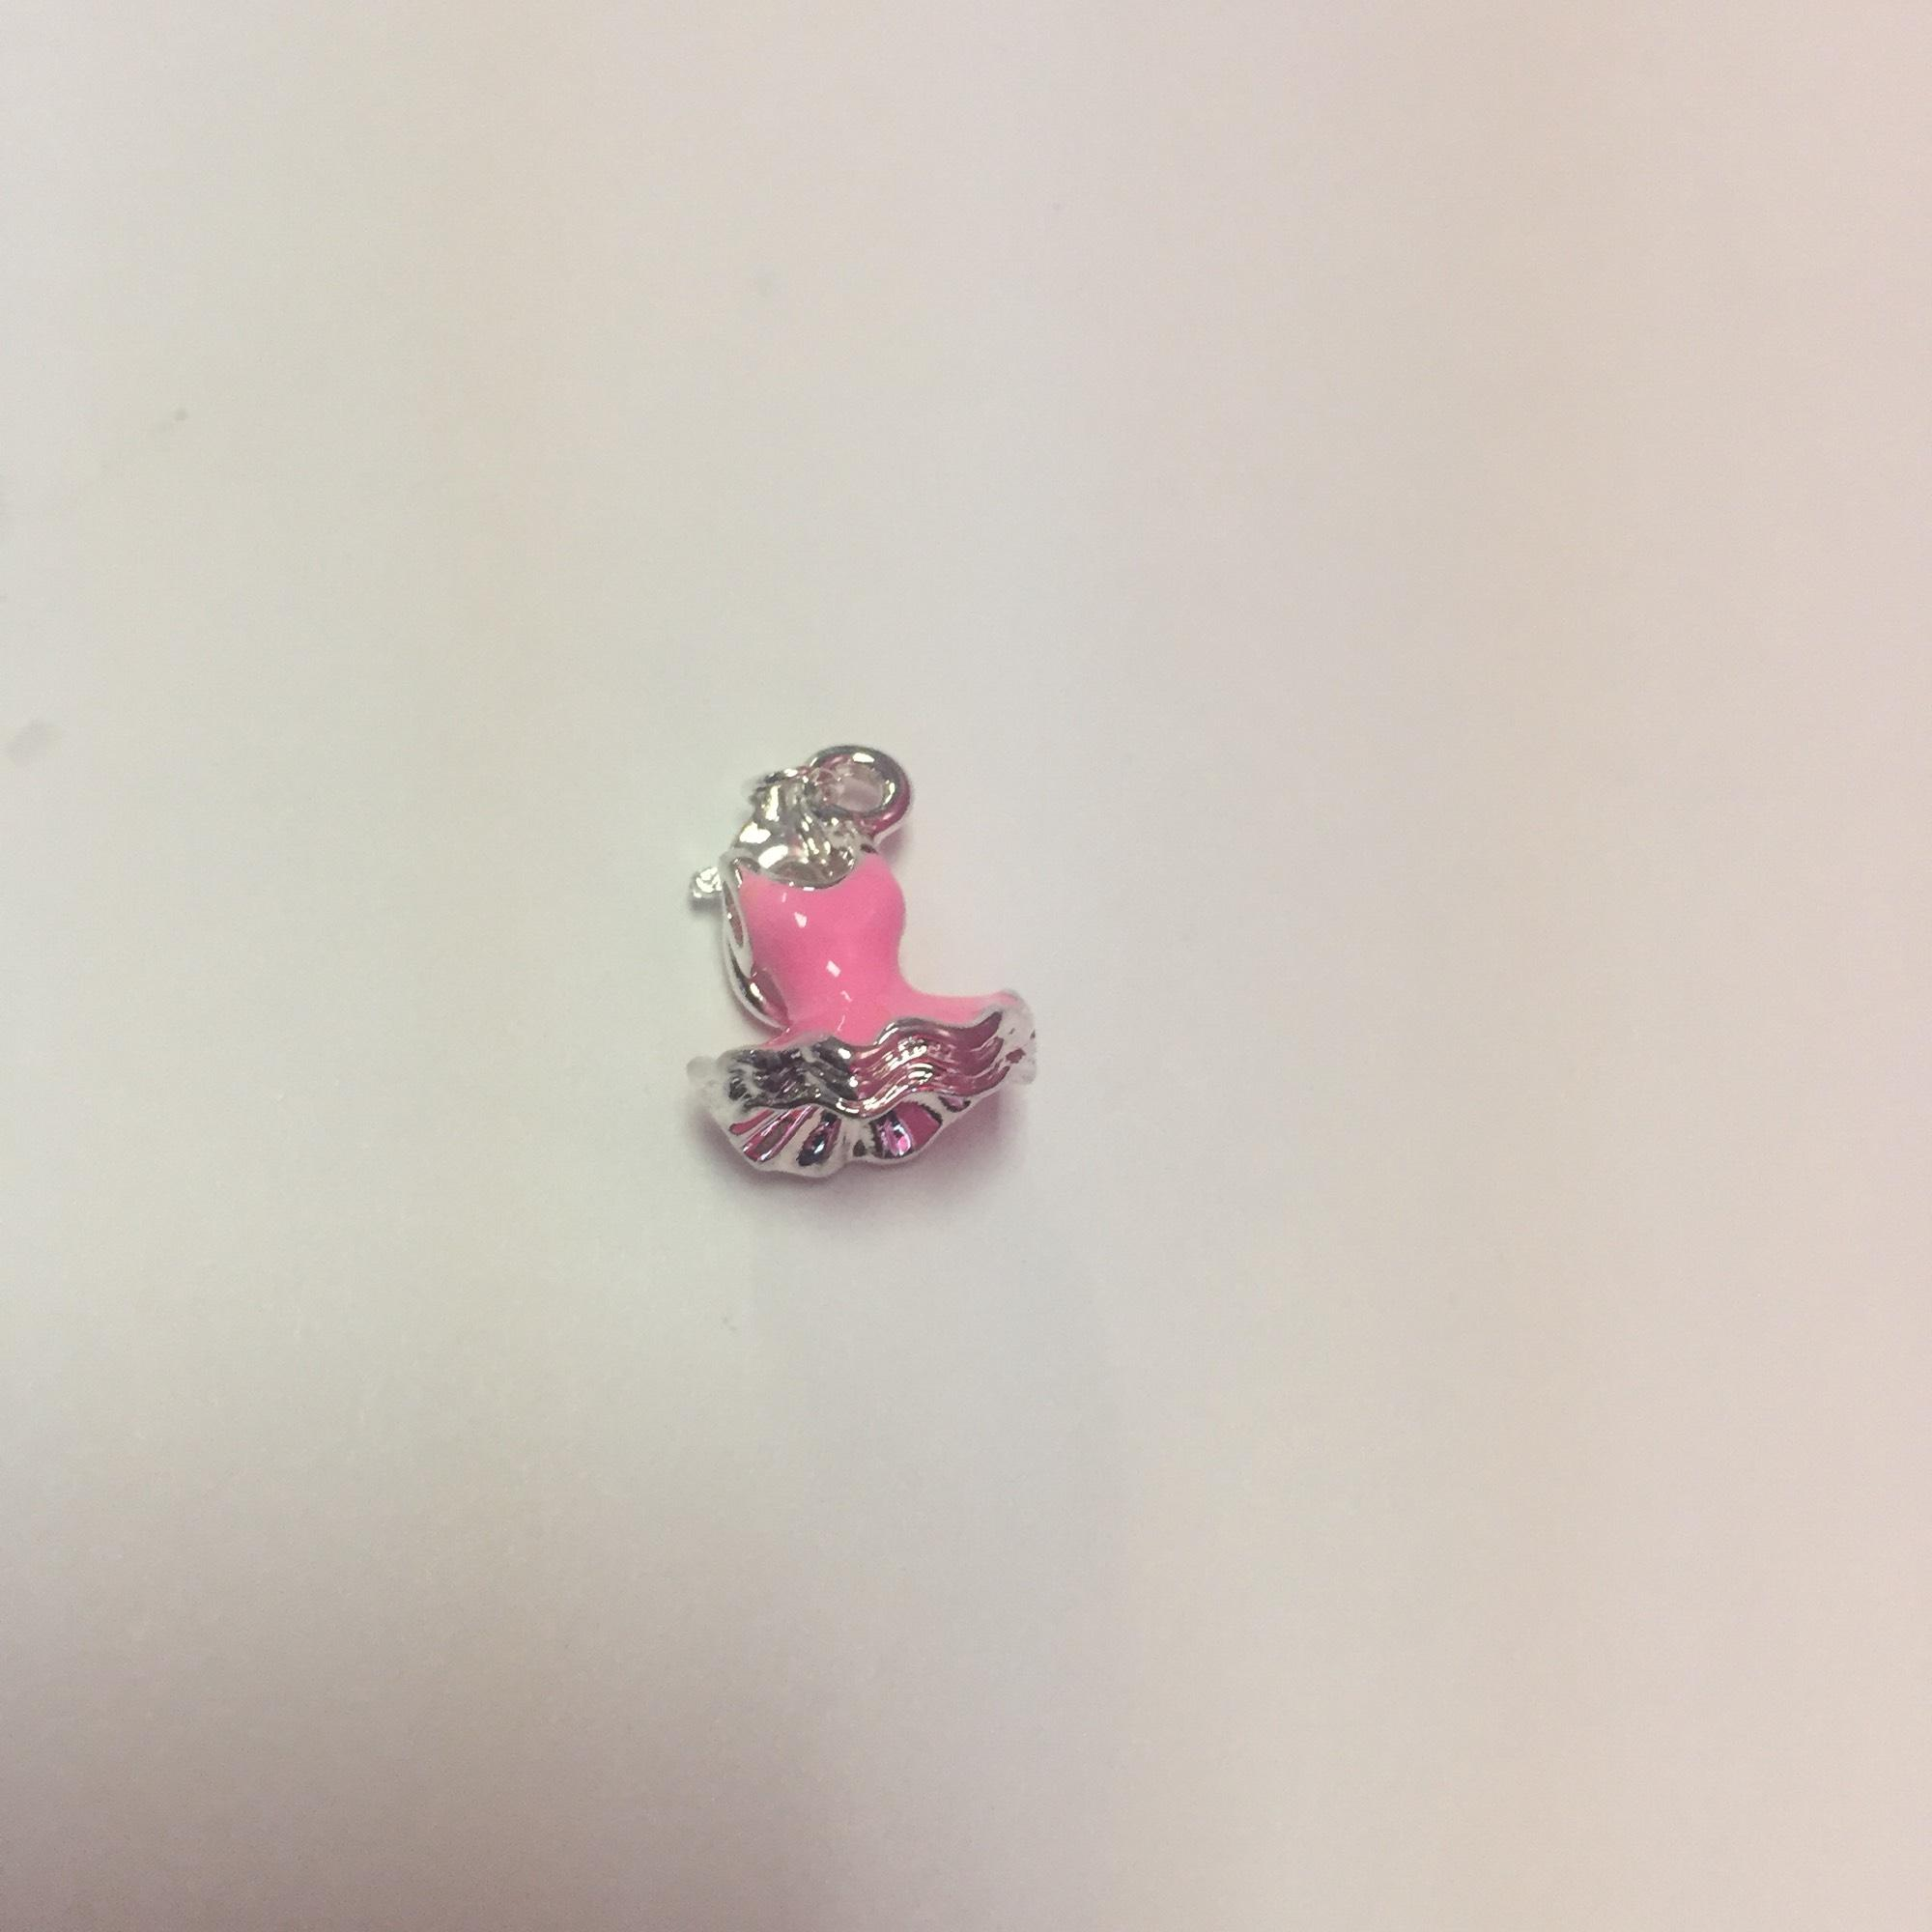 Party dress charm